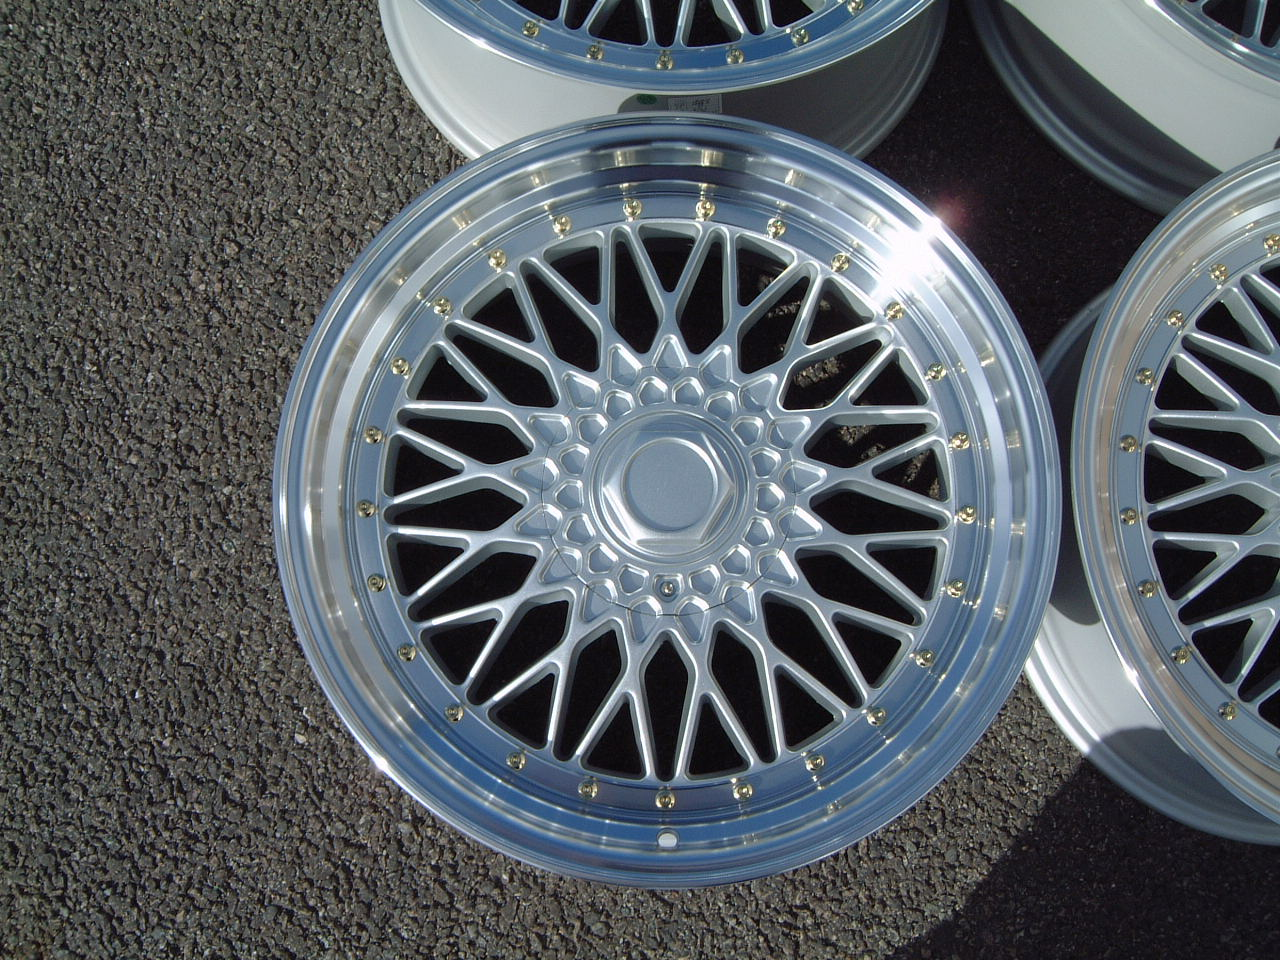 "NEW 18"" DARE RS STYLE ALLOY WHEELS IN SILVER/POLISHED,WITH GOLD RIVETS, DEEP DISH 9.5"" REAR!! et42/42"